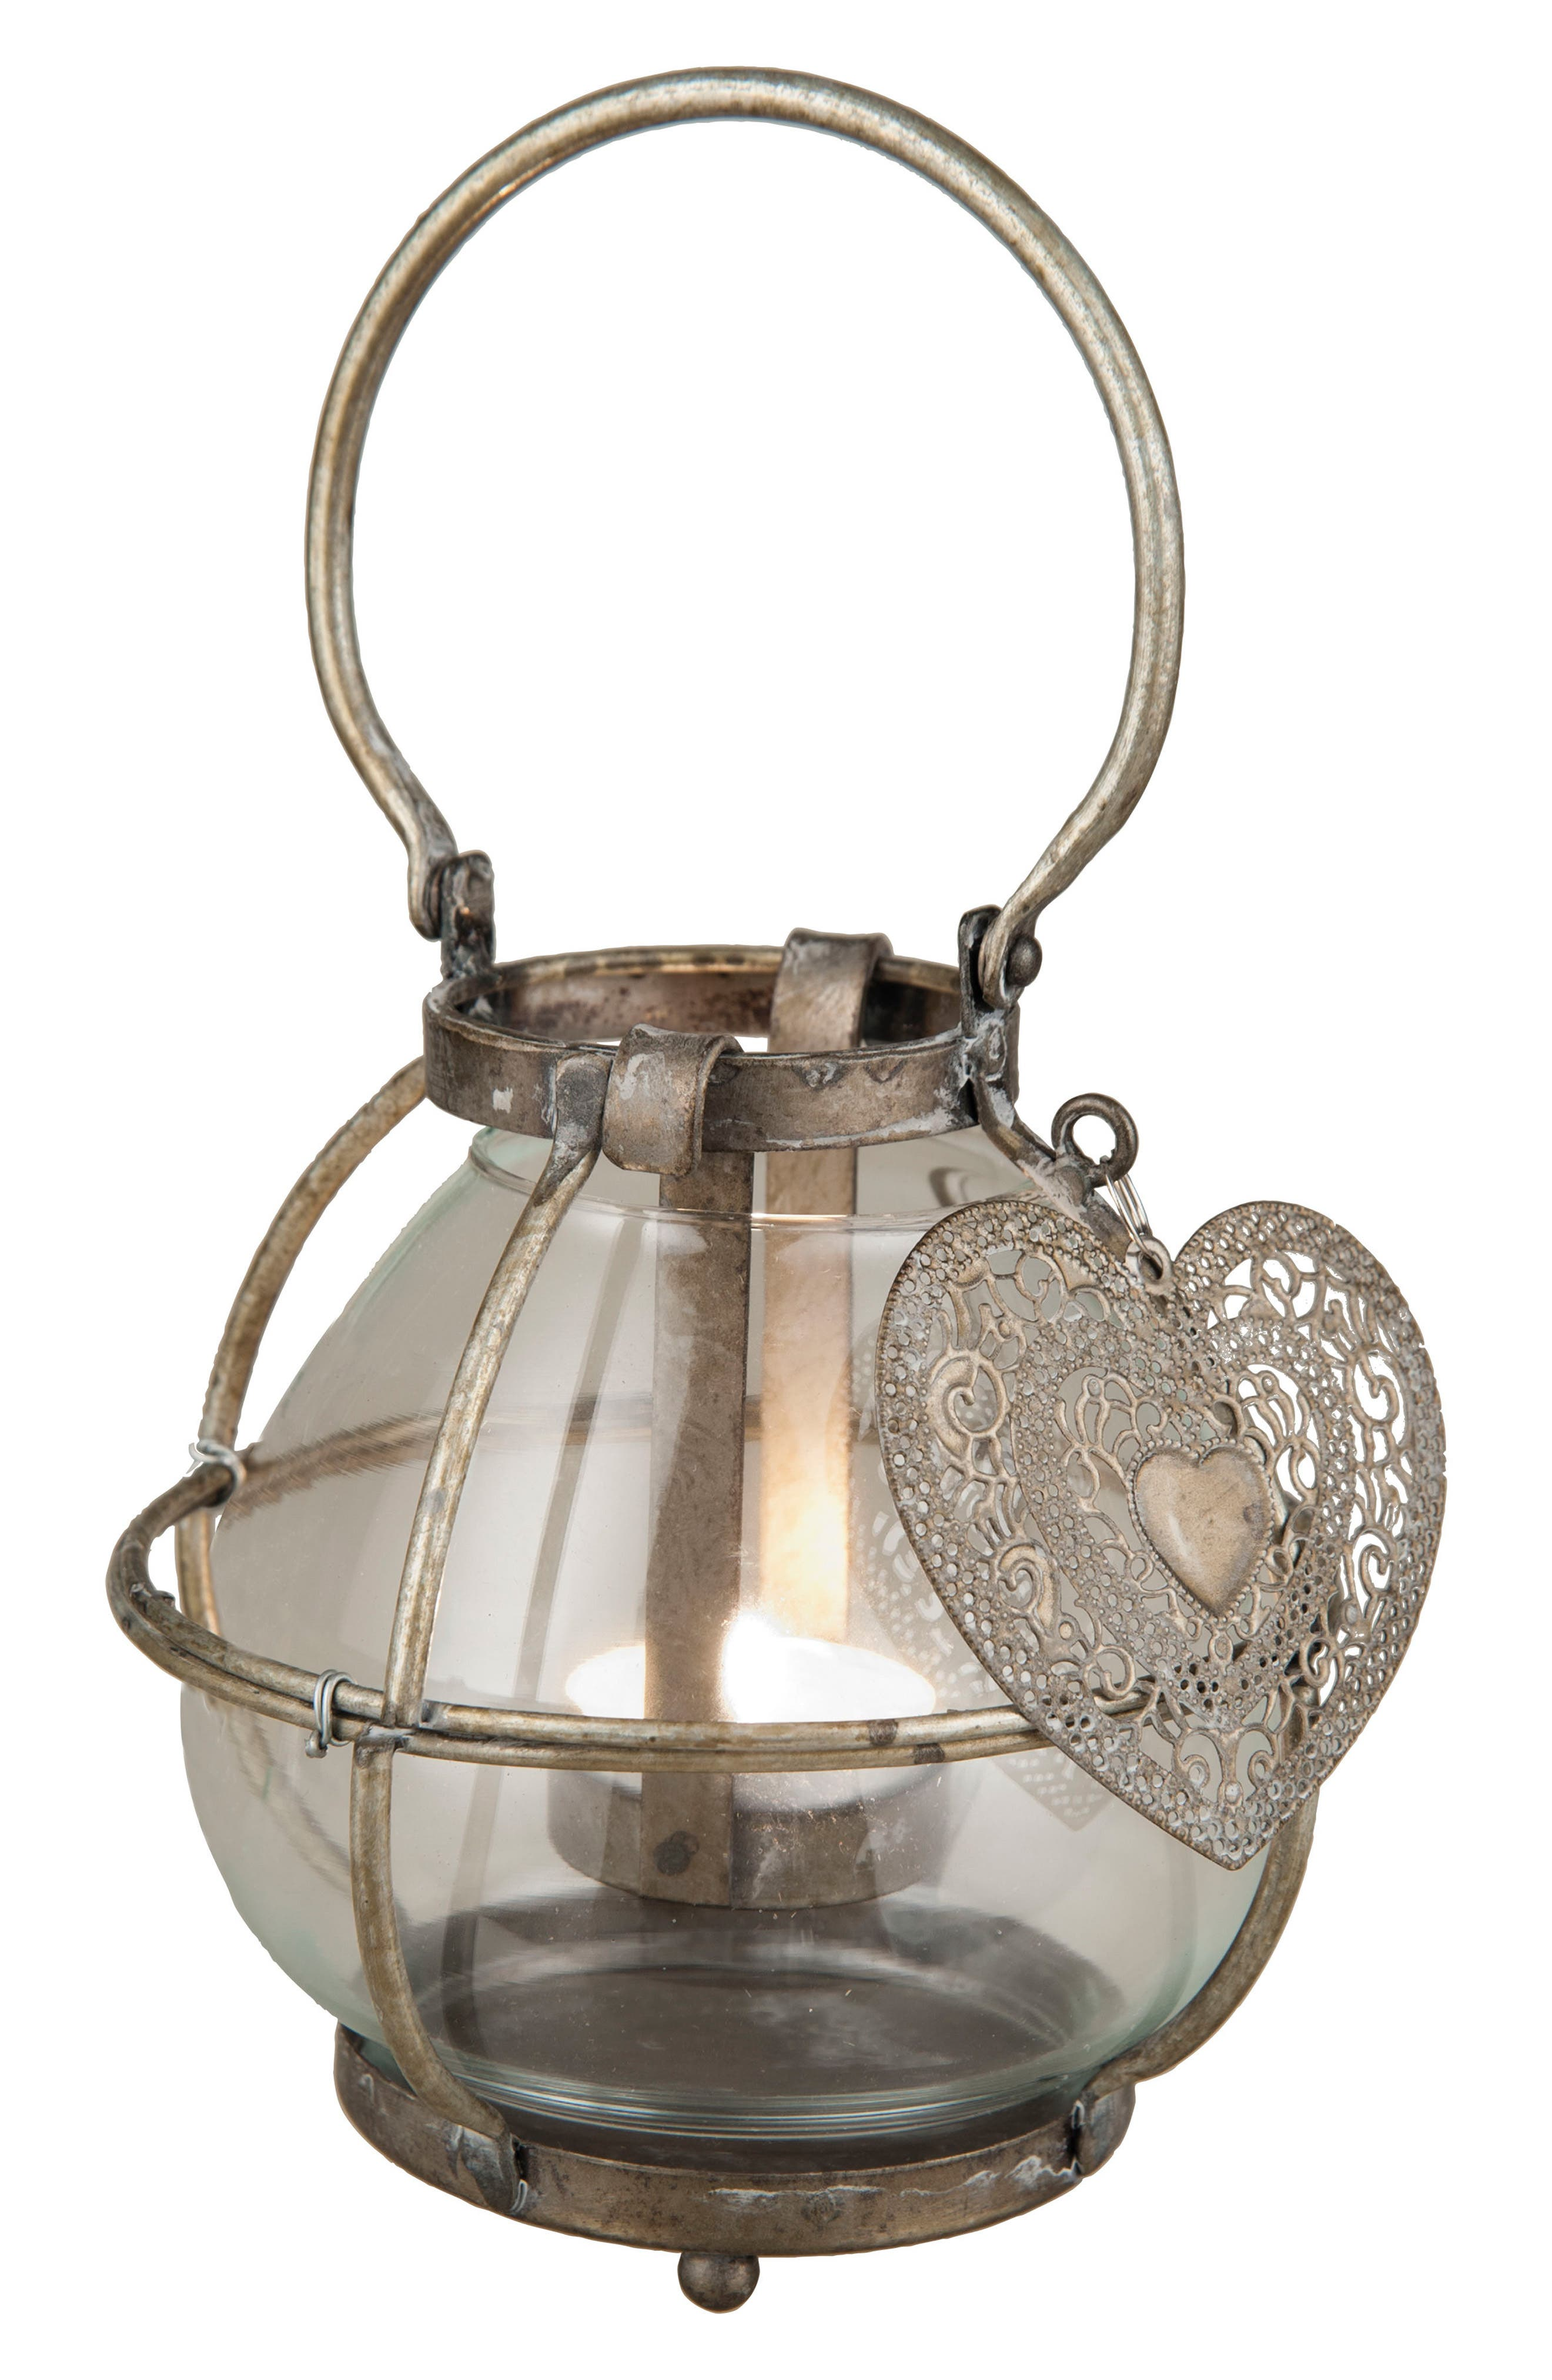 With Love Lantern Candle Holder,                         Main,                         color, Metal/ Glass